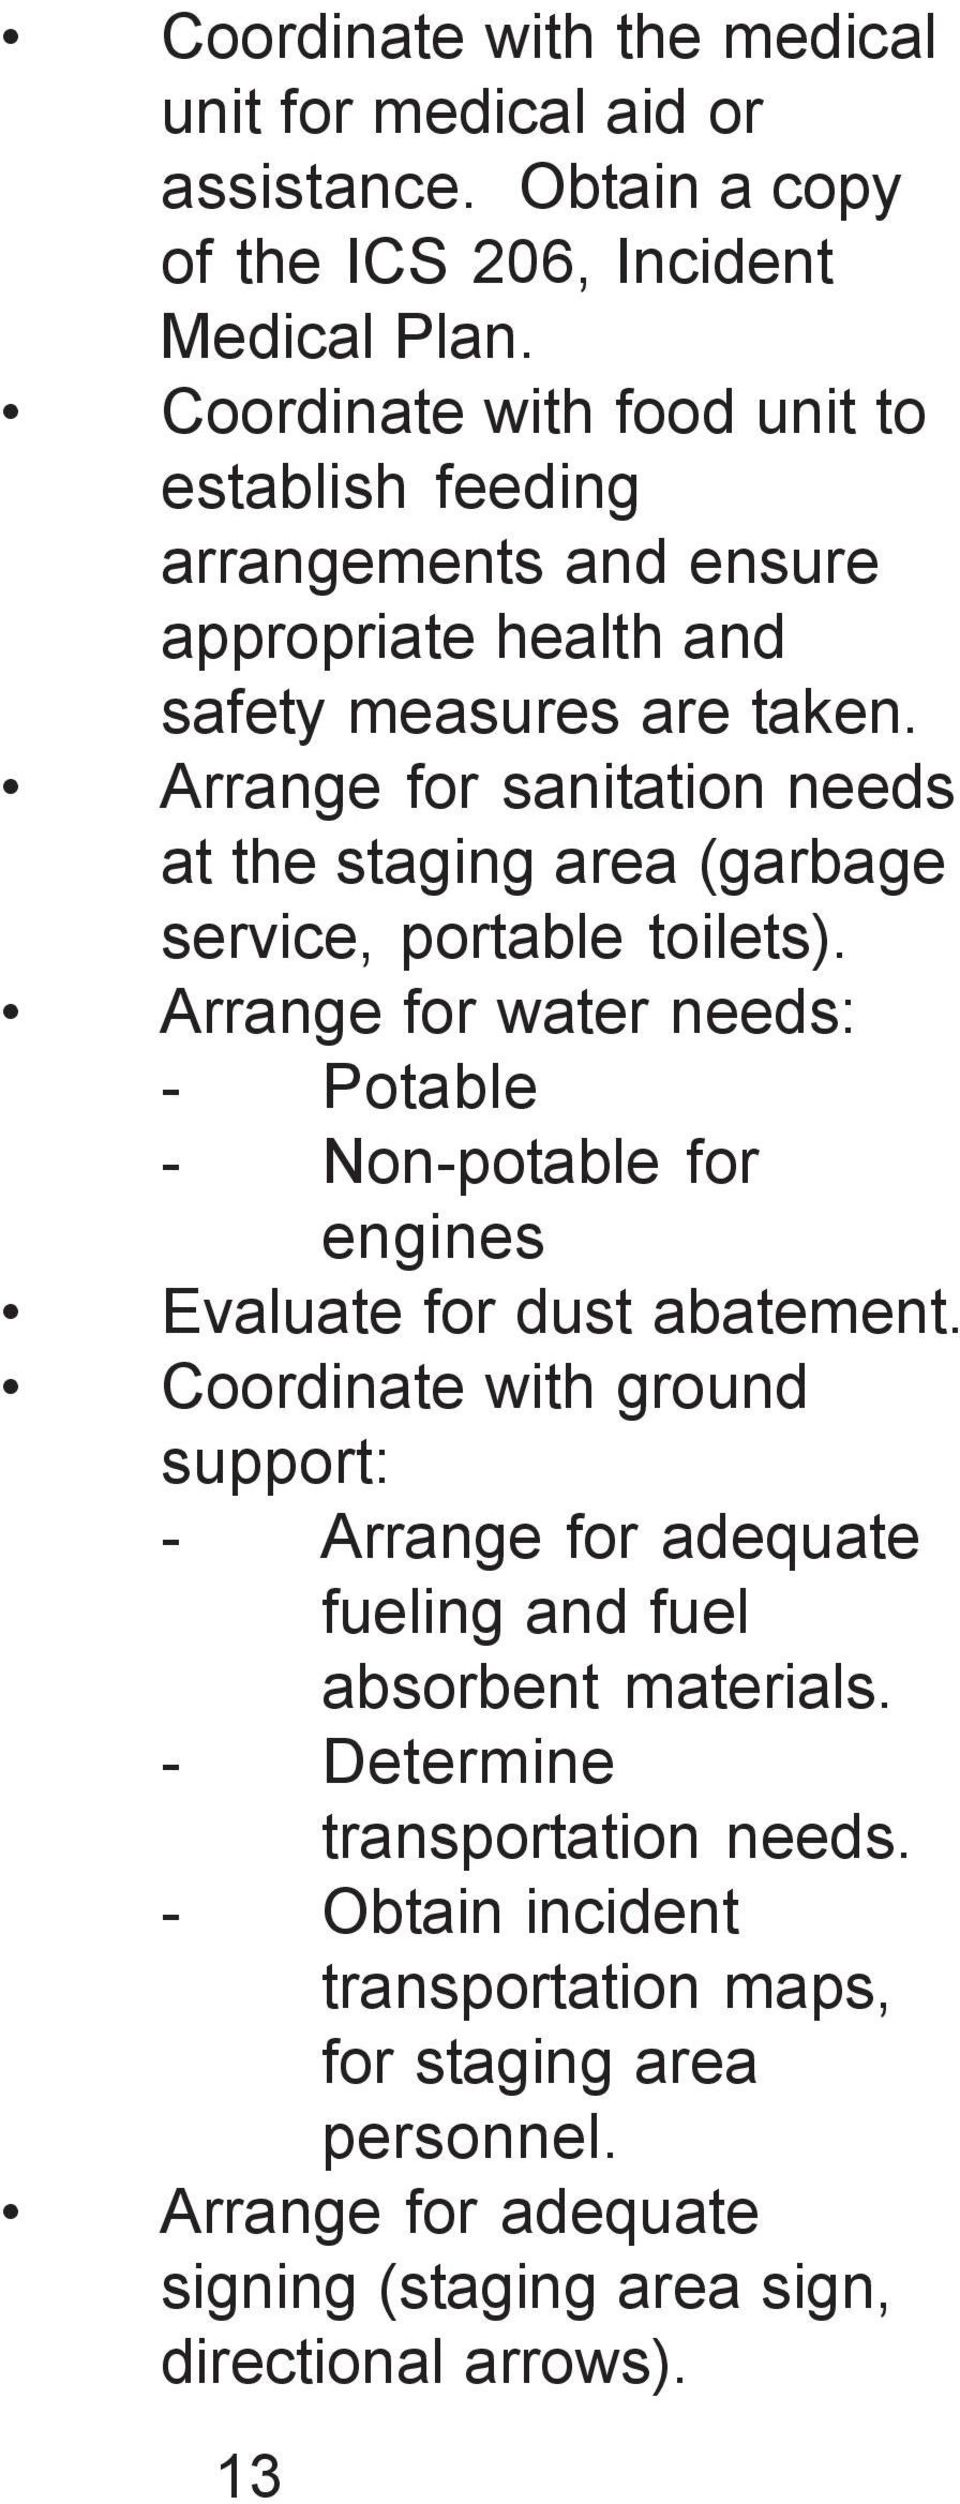 Arrange for sanitation needs at the staging area (garbage service, portable toilets).